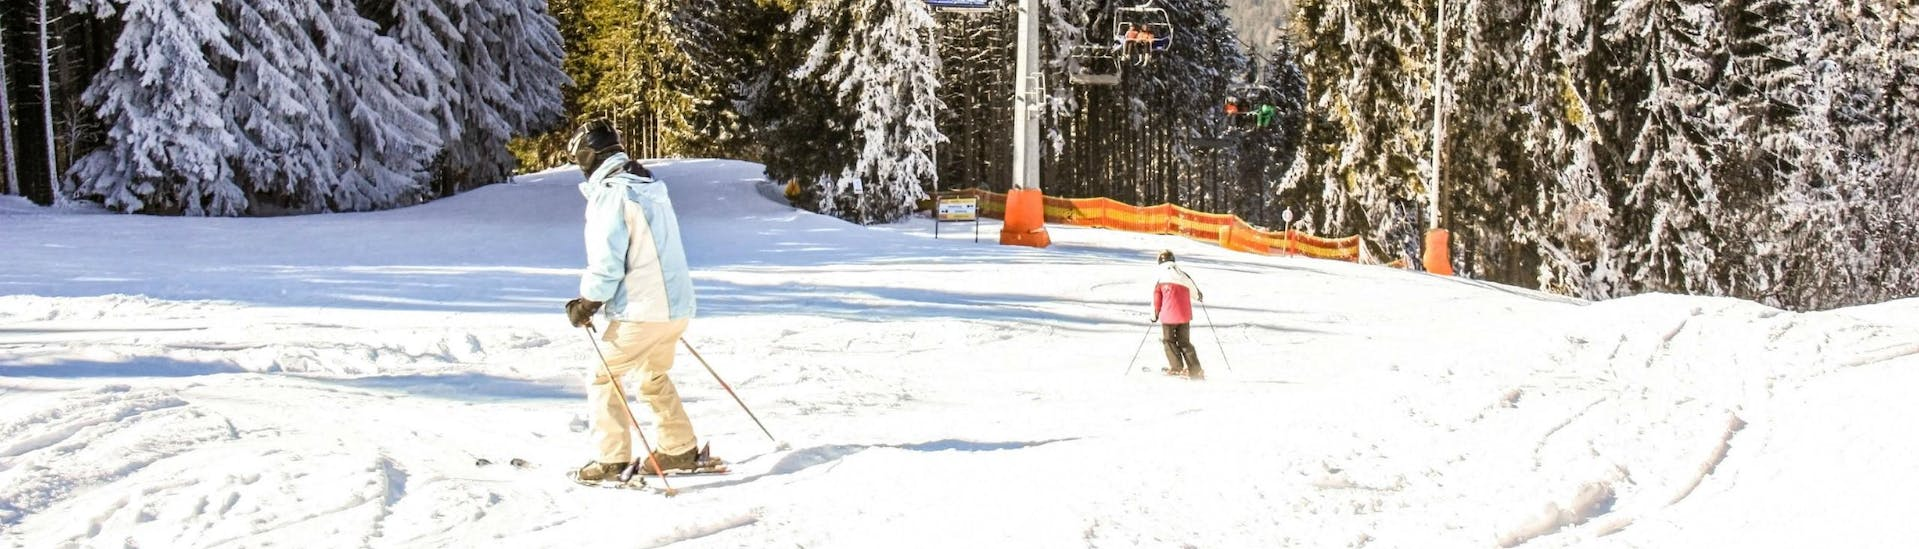 Two skiers are skiing down one of the ski slopes in the ski resort of Semmering, where visitors can book ski lessons with the local ski schools.